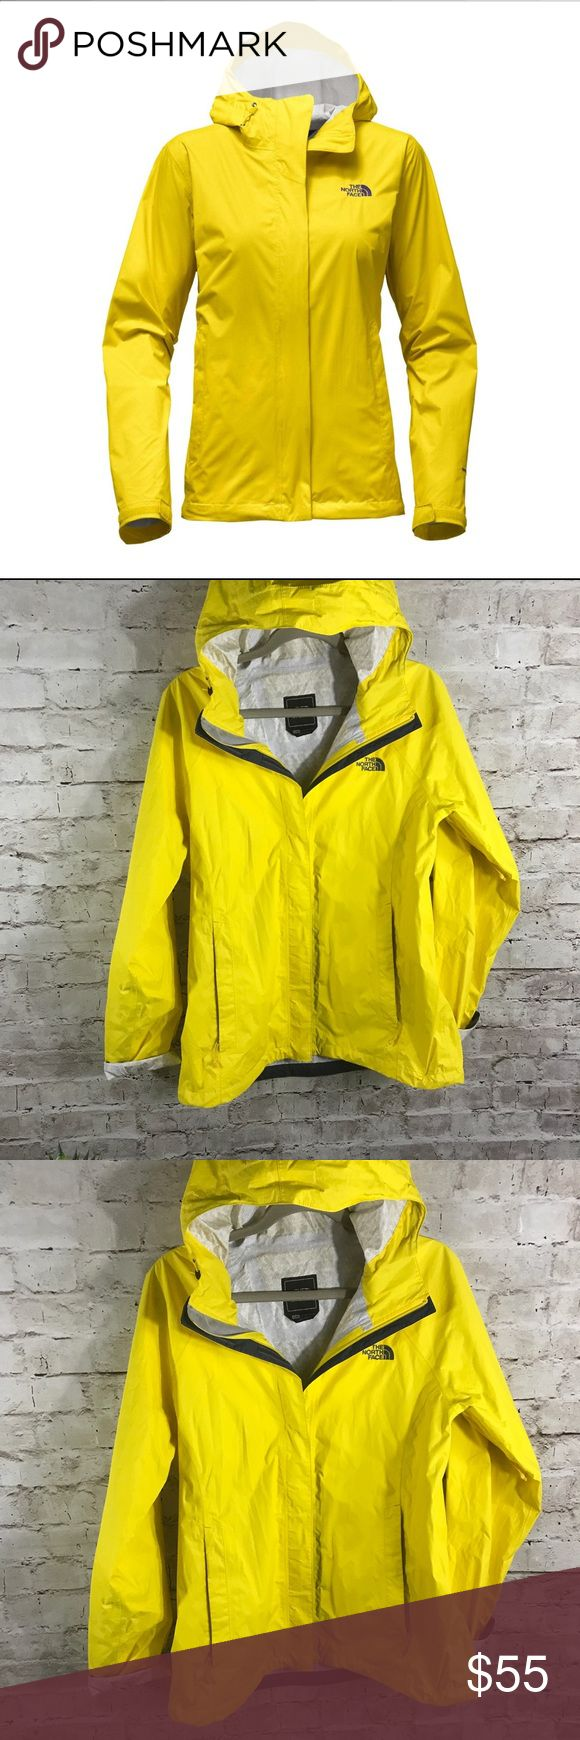 The North Face yellow rain jacket Relaxed fit offers lasting comfort DryVent™ technology provides maximum protection and performance 100% windproof fabric shields you from harm winds Fixed hood is adjustable Cinch cord at the hem traps warmth inside VELCRO® brand cuff tabs are adjustable Stormflap with VELCRO® brand closure covers center zip Pit zip venting enhances breathability Jacket is stowable in hand pocket for easy travel Two zip hand-warming pockets Like new condition. Size L The…